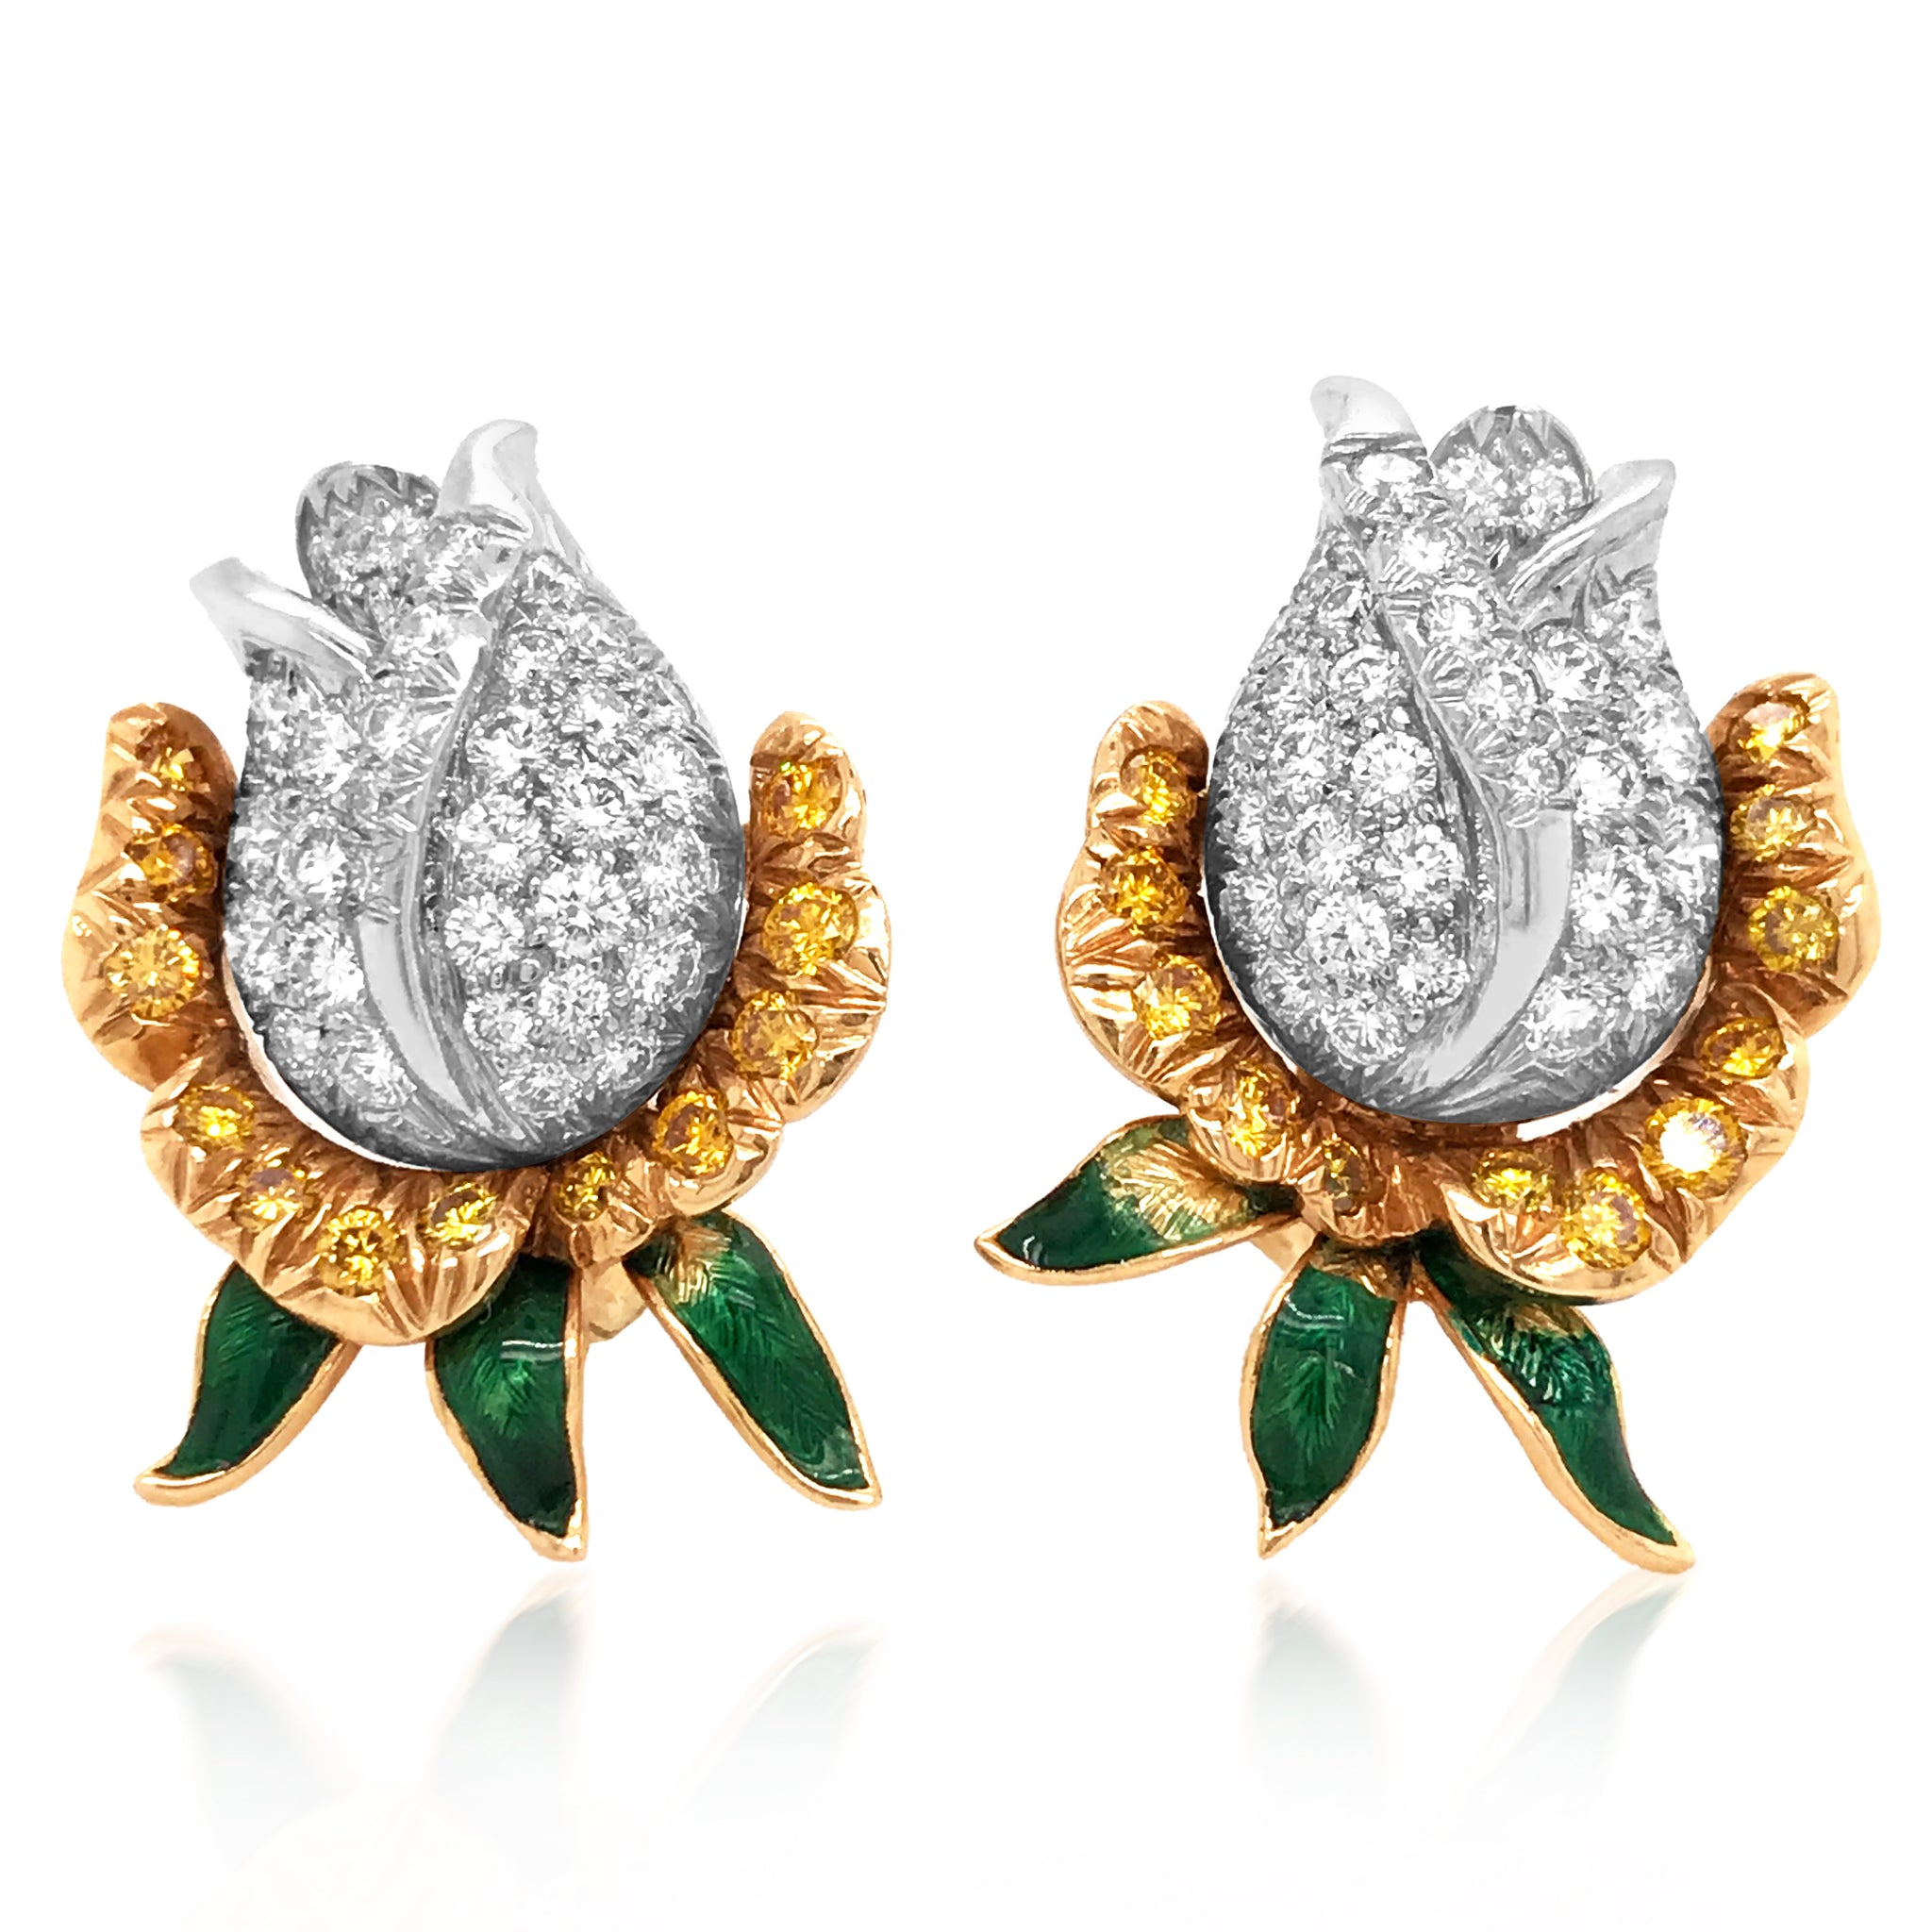 Oscar Heyman, Enamel Diamond Yellow Diamond Gold Earrings - Lueur Jewelry